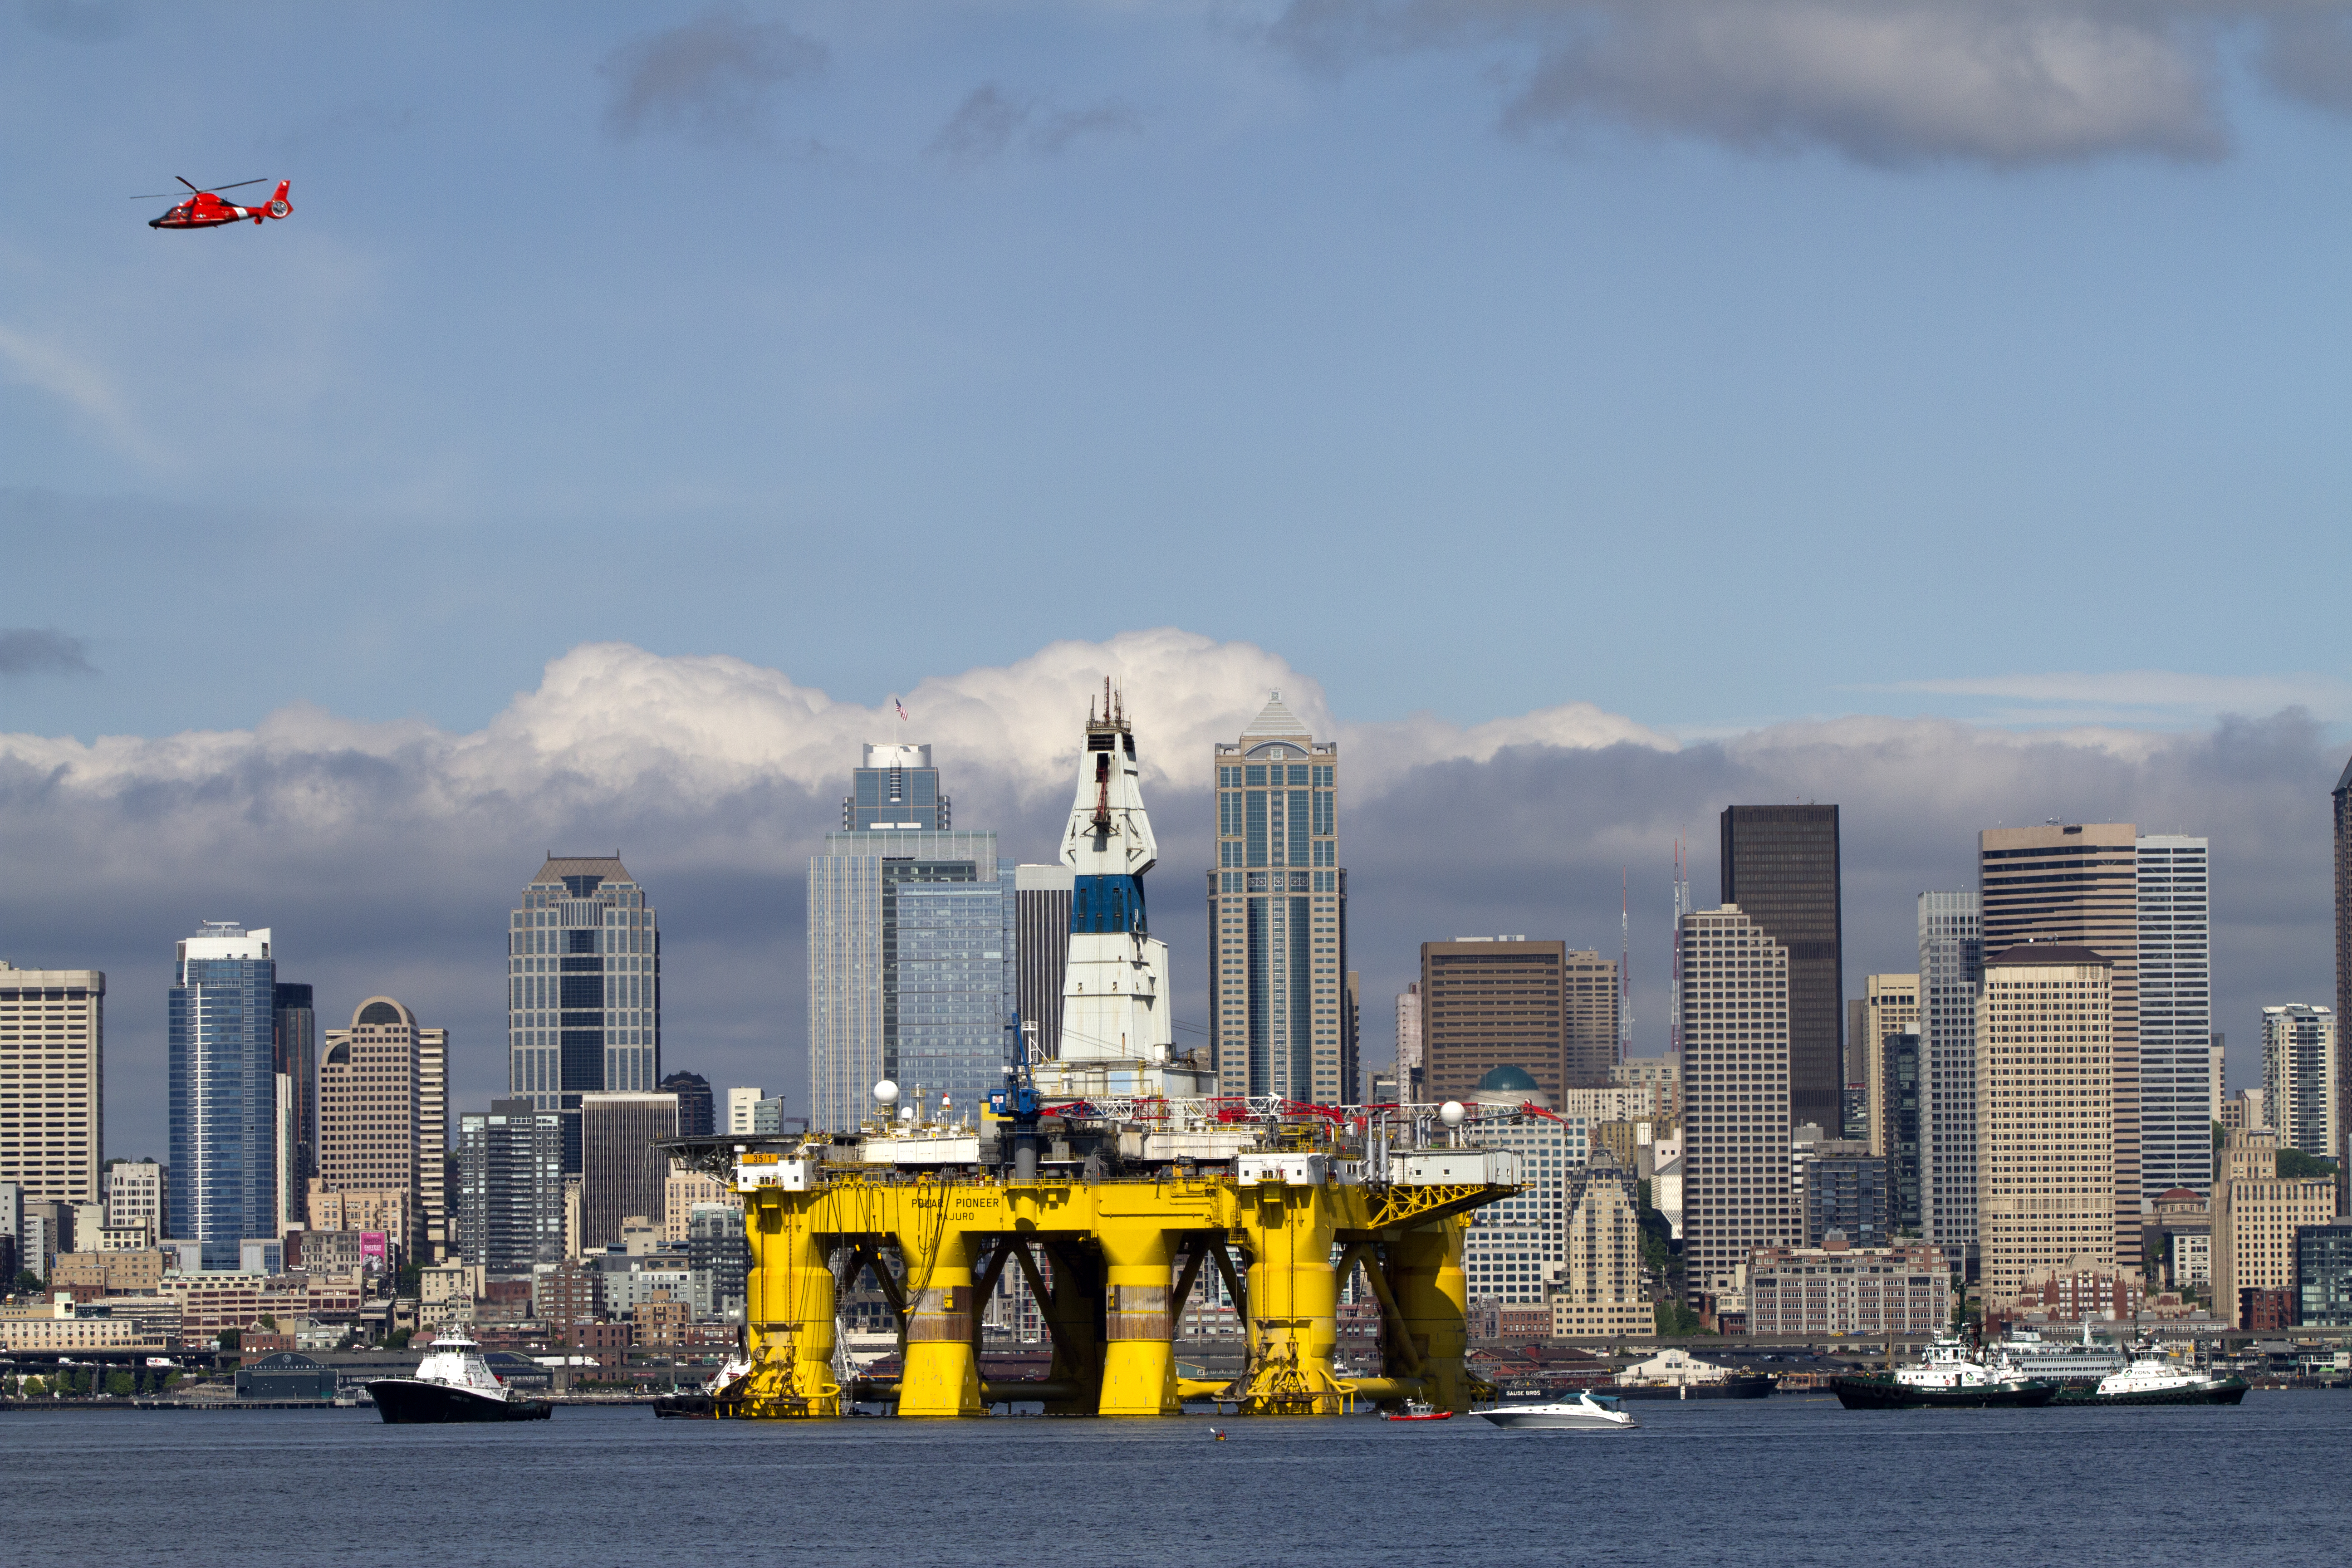 The Polar Pioneer, an oil drilling rig owned by Shell Oil, arrives on May 14, 2015 in Seattle, Washington. The rig is part of a fleet that will lead a controversial oil-exploration effort off Alaska's North Slope.